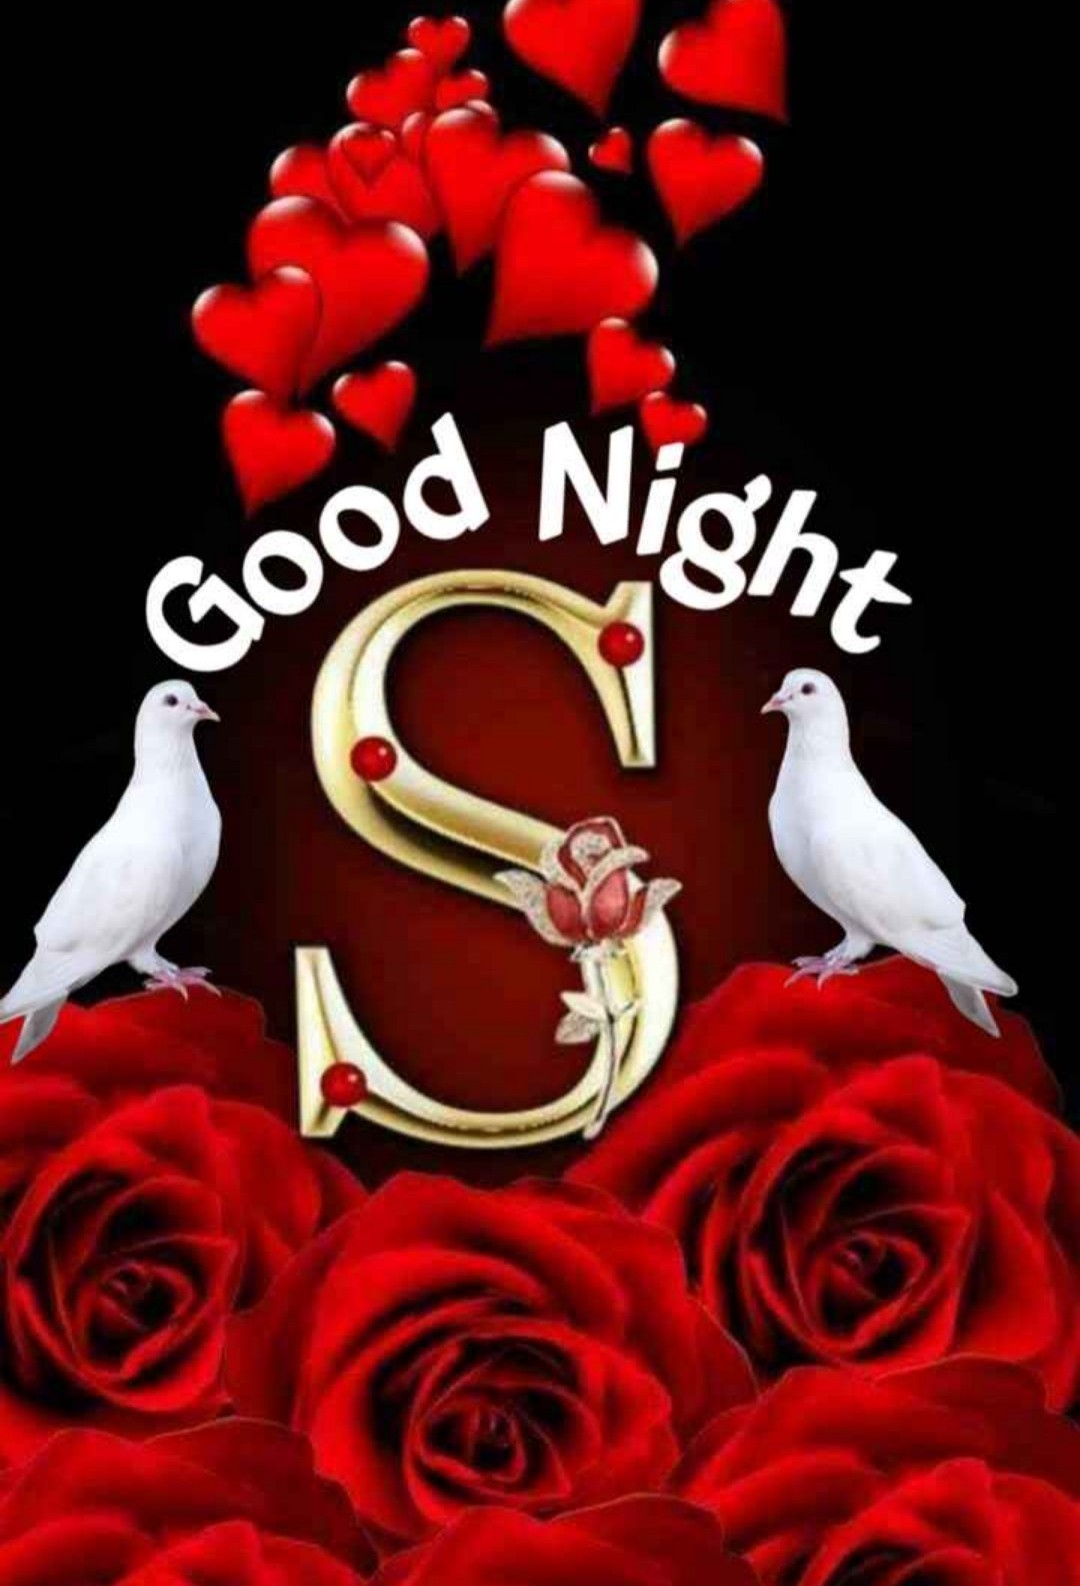 550 Best Good Night Image Good Night Image For Love Good Night Image For Lover Good Night Image Download Good Night Image Hd Wishing Photo